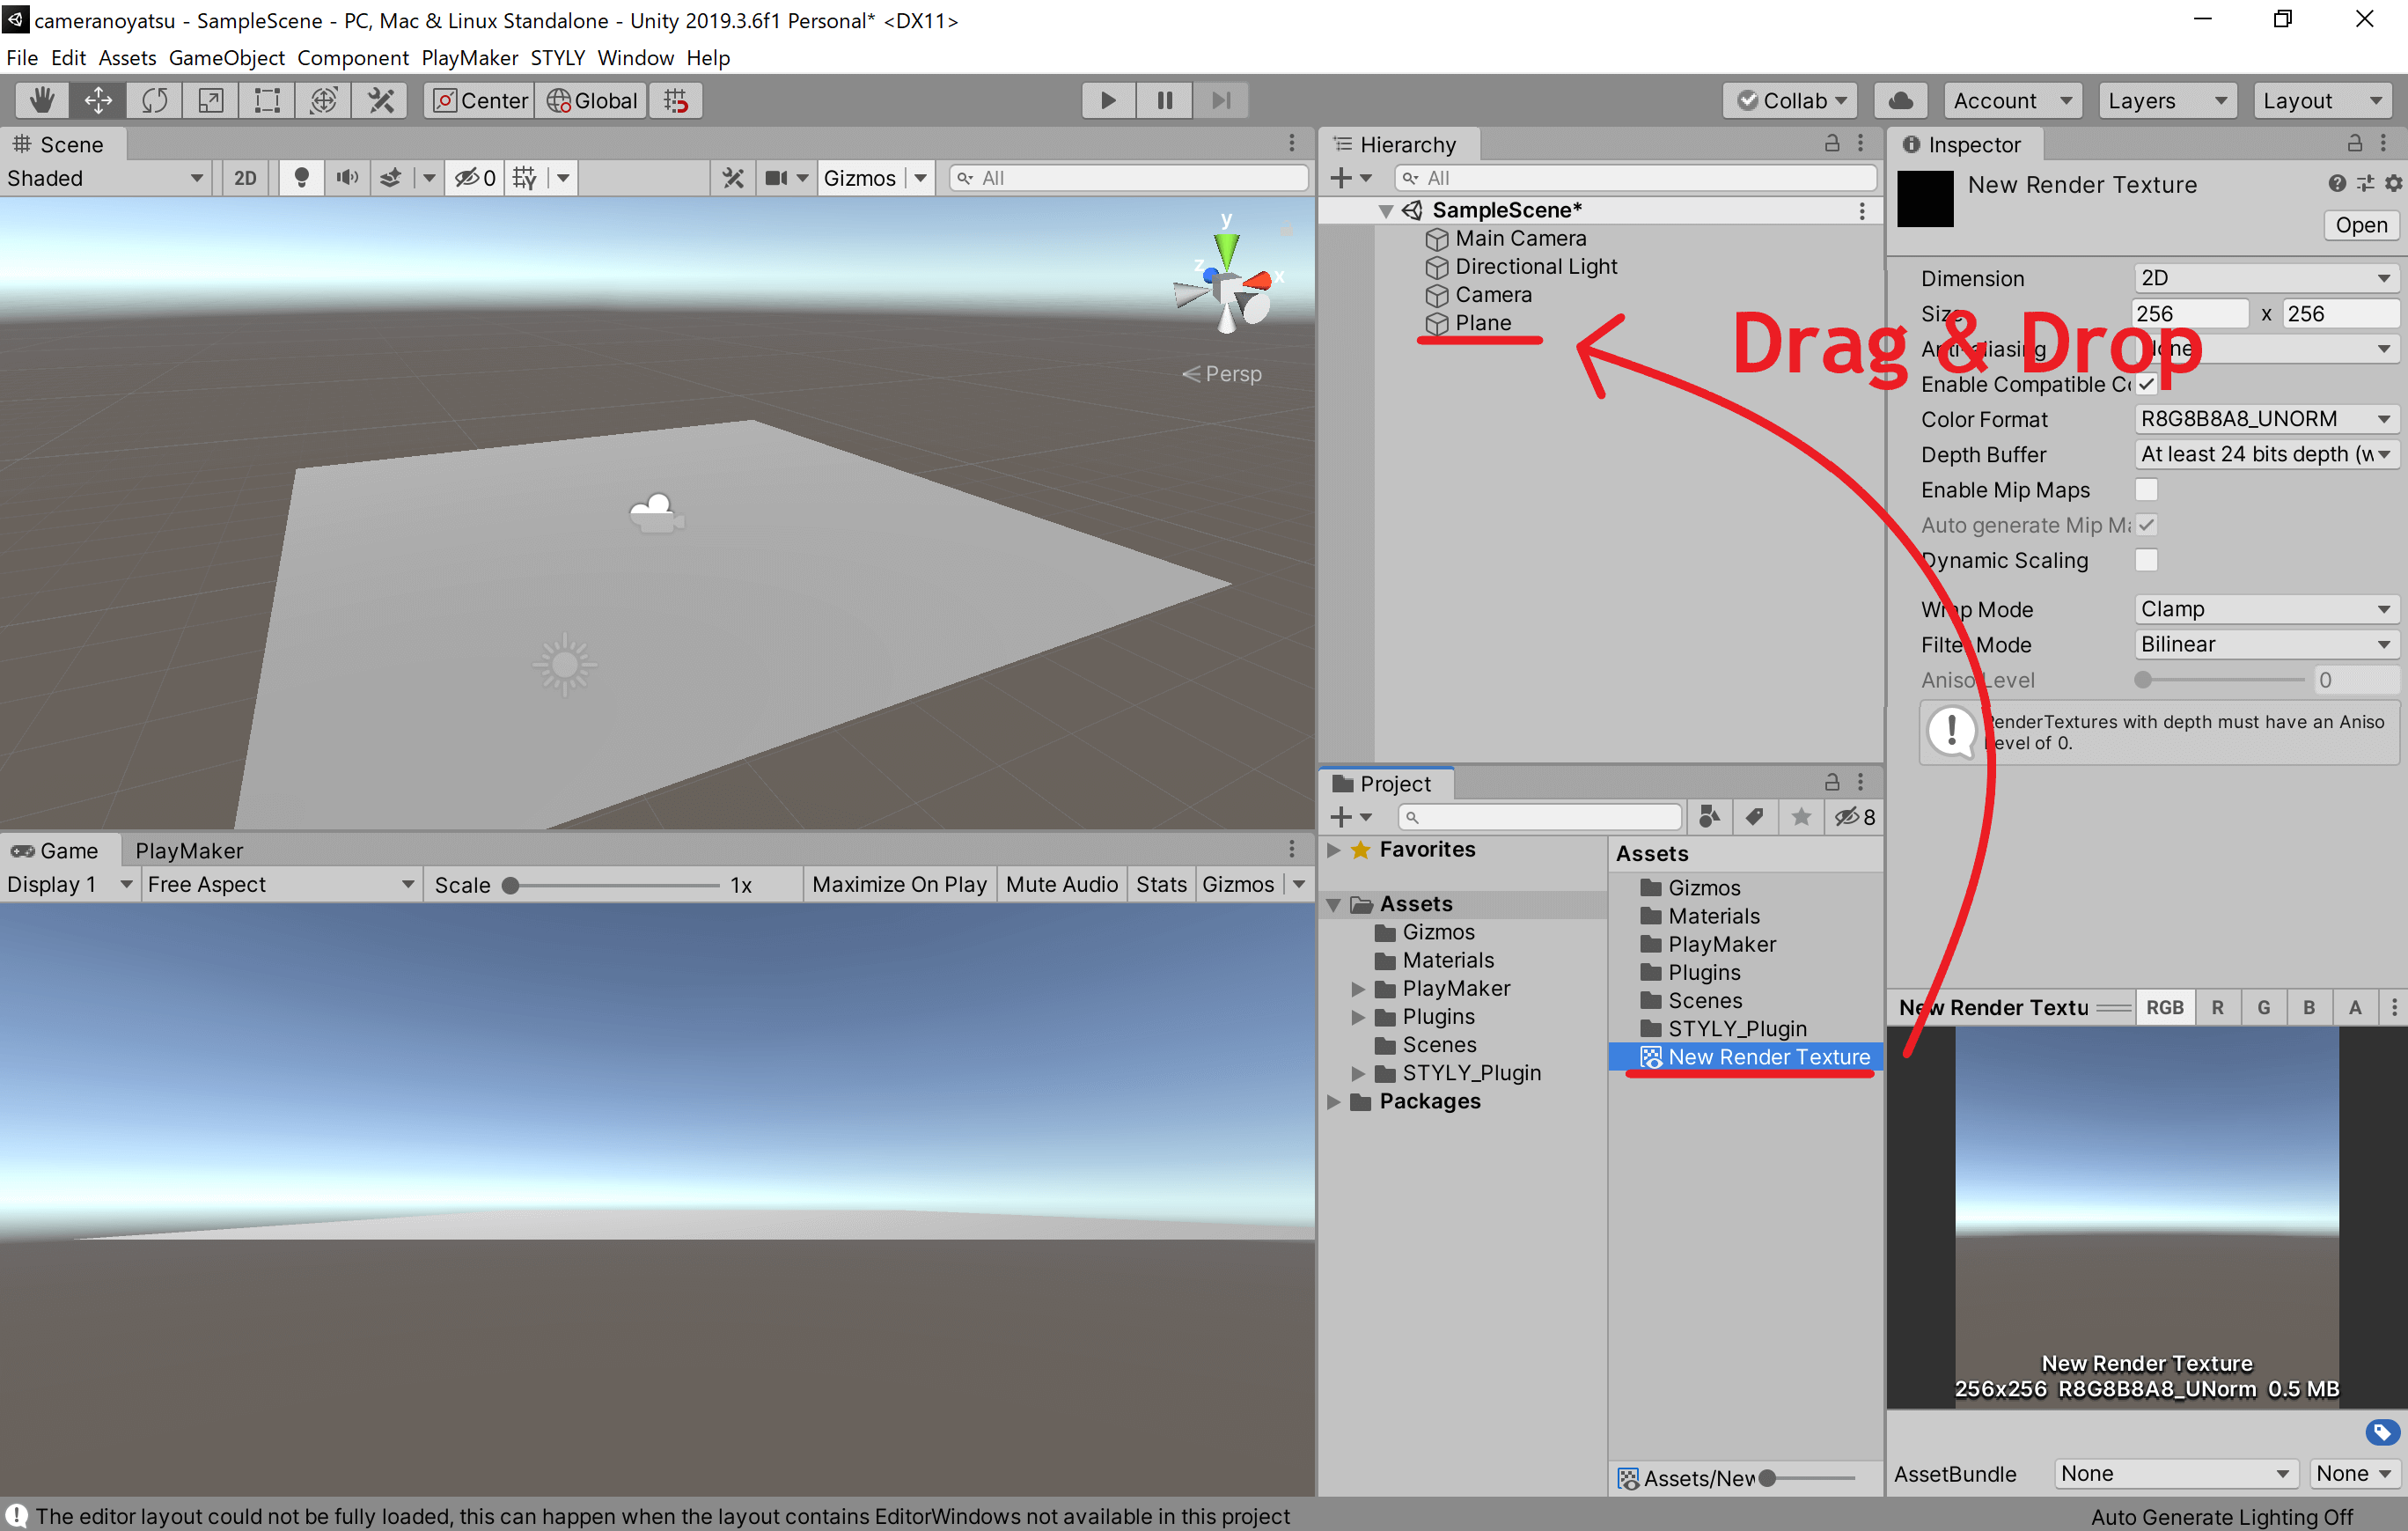 The appearance of the Plane in the scene view changes